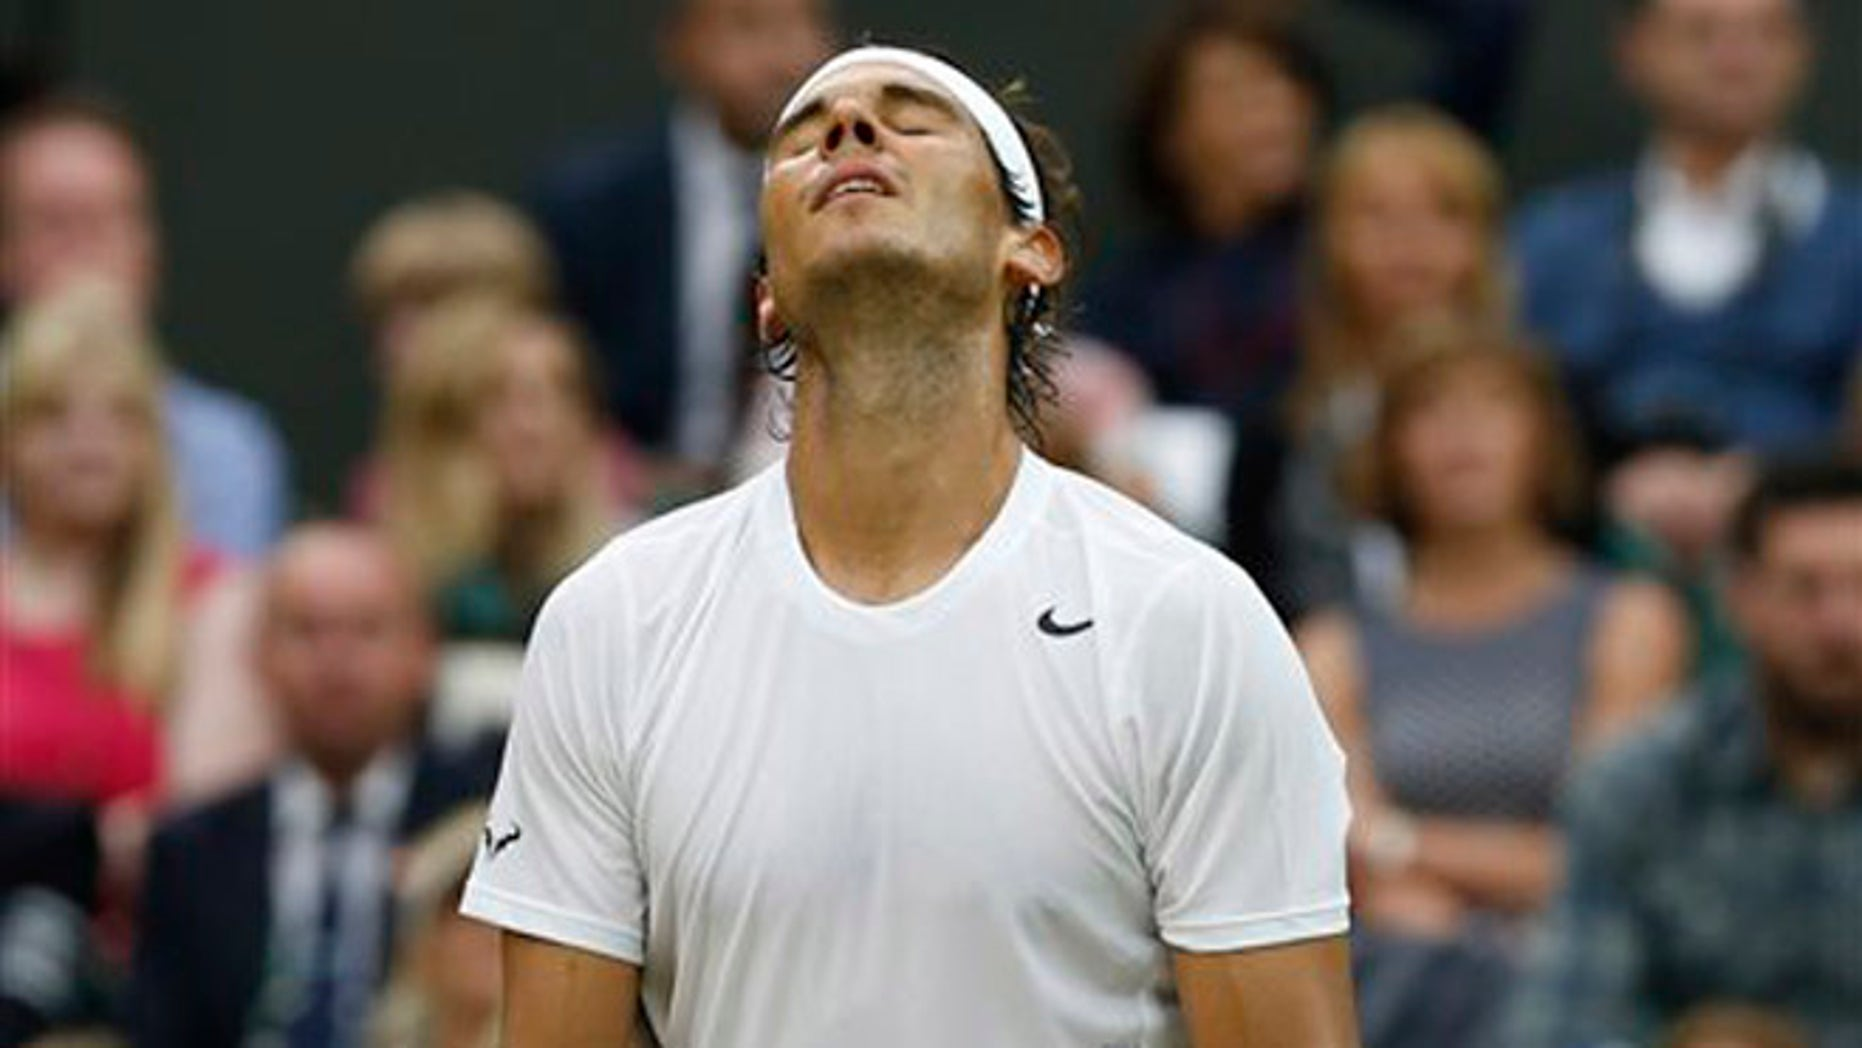 Rafael Nadal of Spain reacts in frustration after missing a point as he plays against Mikhail Kukushkin of Kazakhstan during their men's singles match on Centre Court at the All England Lawn Tennis Championships in Wimbledon, London, Saturday, June 28, 2014. (AP Photo/Ben Curtis)